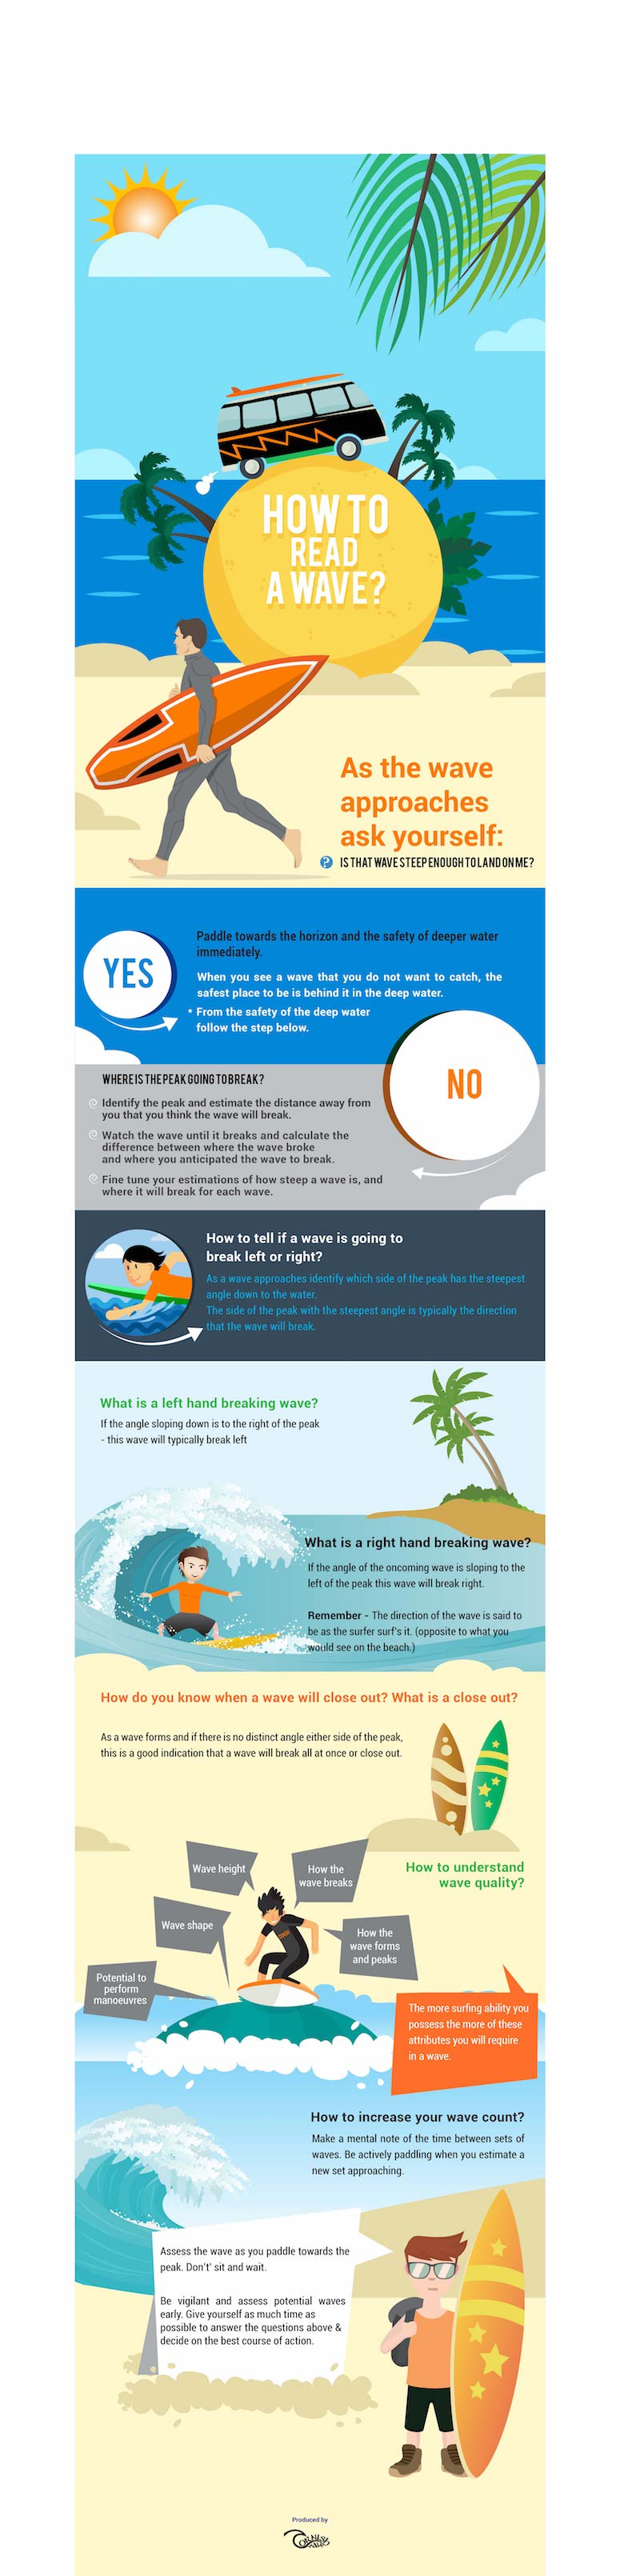 infographic highlighting key points of how to read a wave, what is a left & right hand breaking wave, what is a quality wave